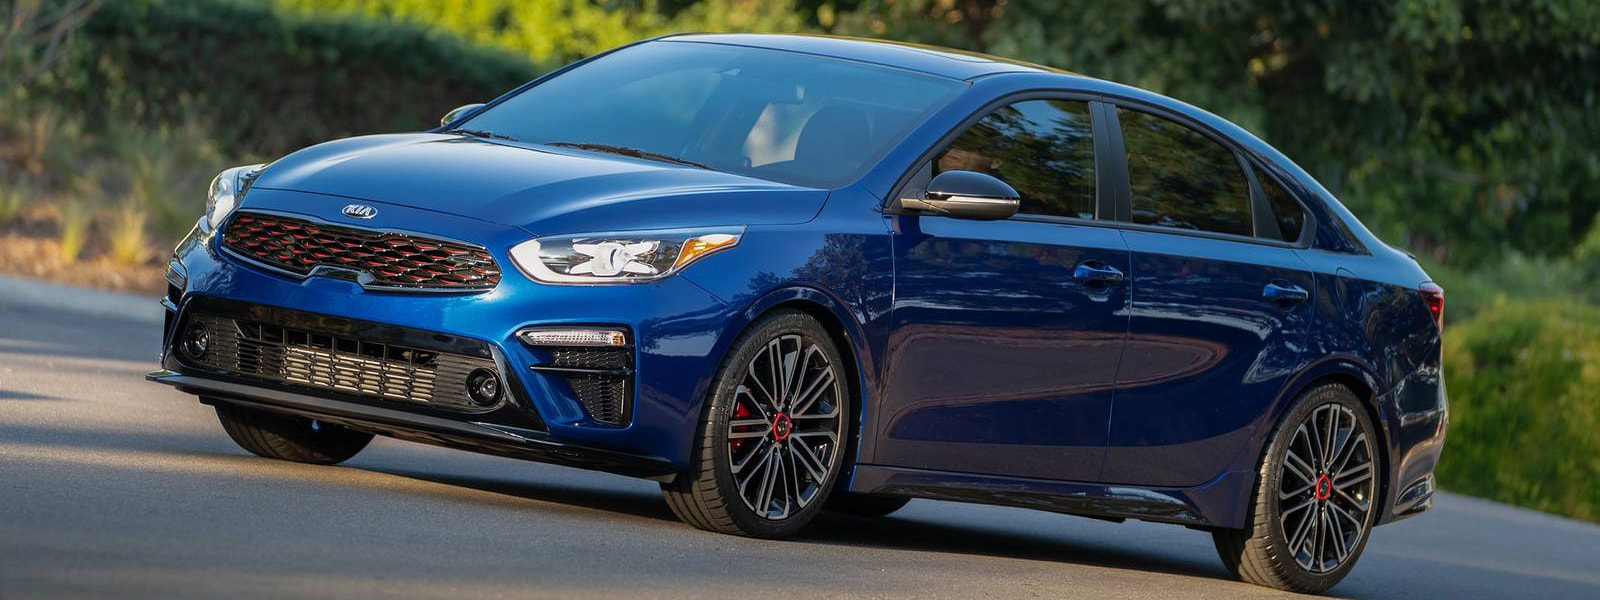 2021 Kia Forte for sale in Oklahoma City